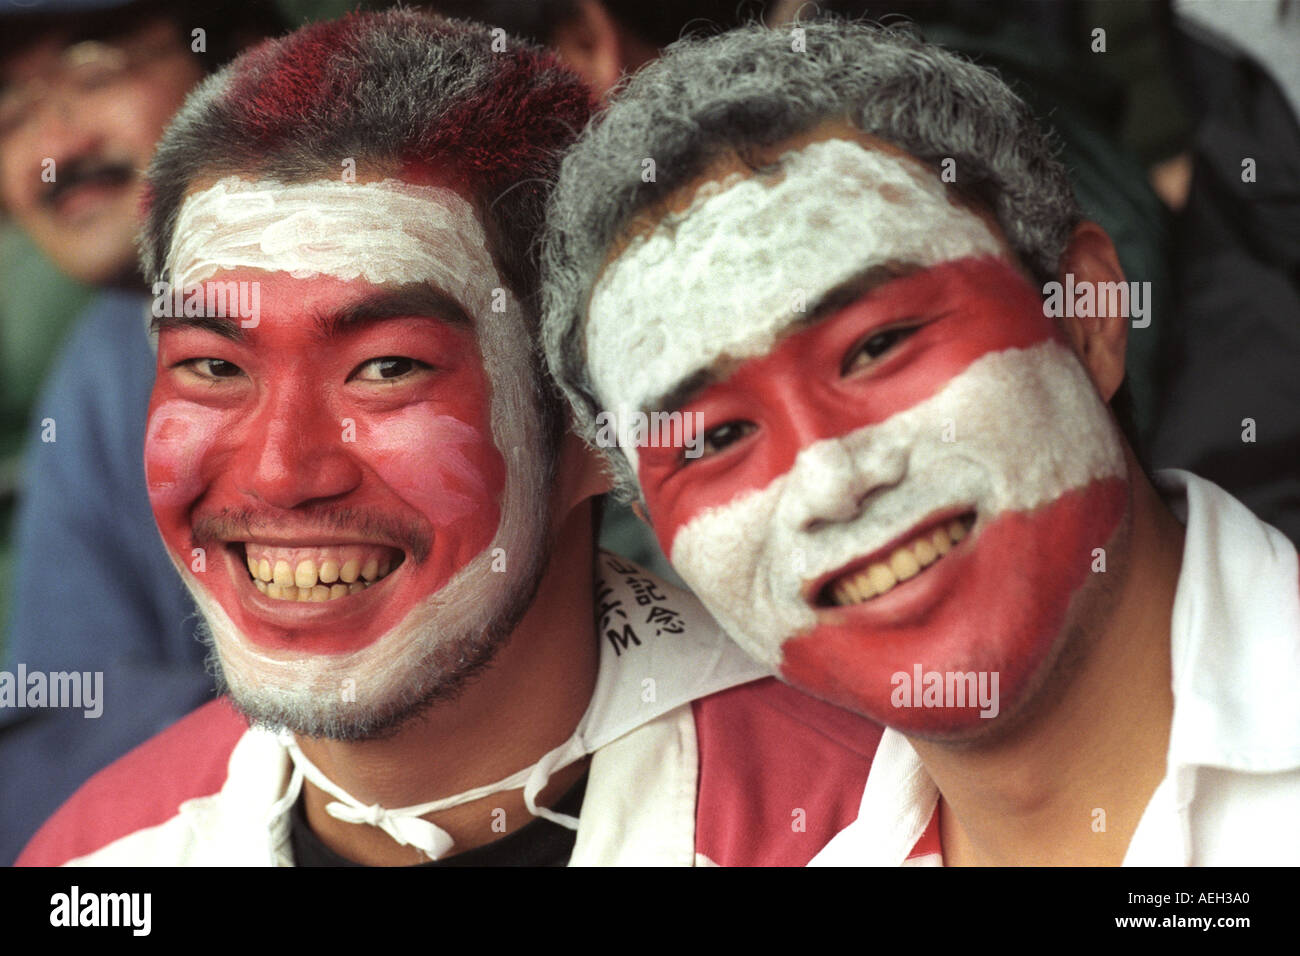 Japanese rugby fans with painted faces supporting their team at  an international match in Millennium Stadium Cardiff Wales UK - Stock Image